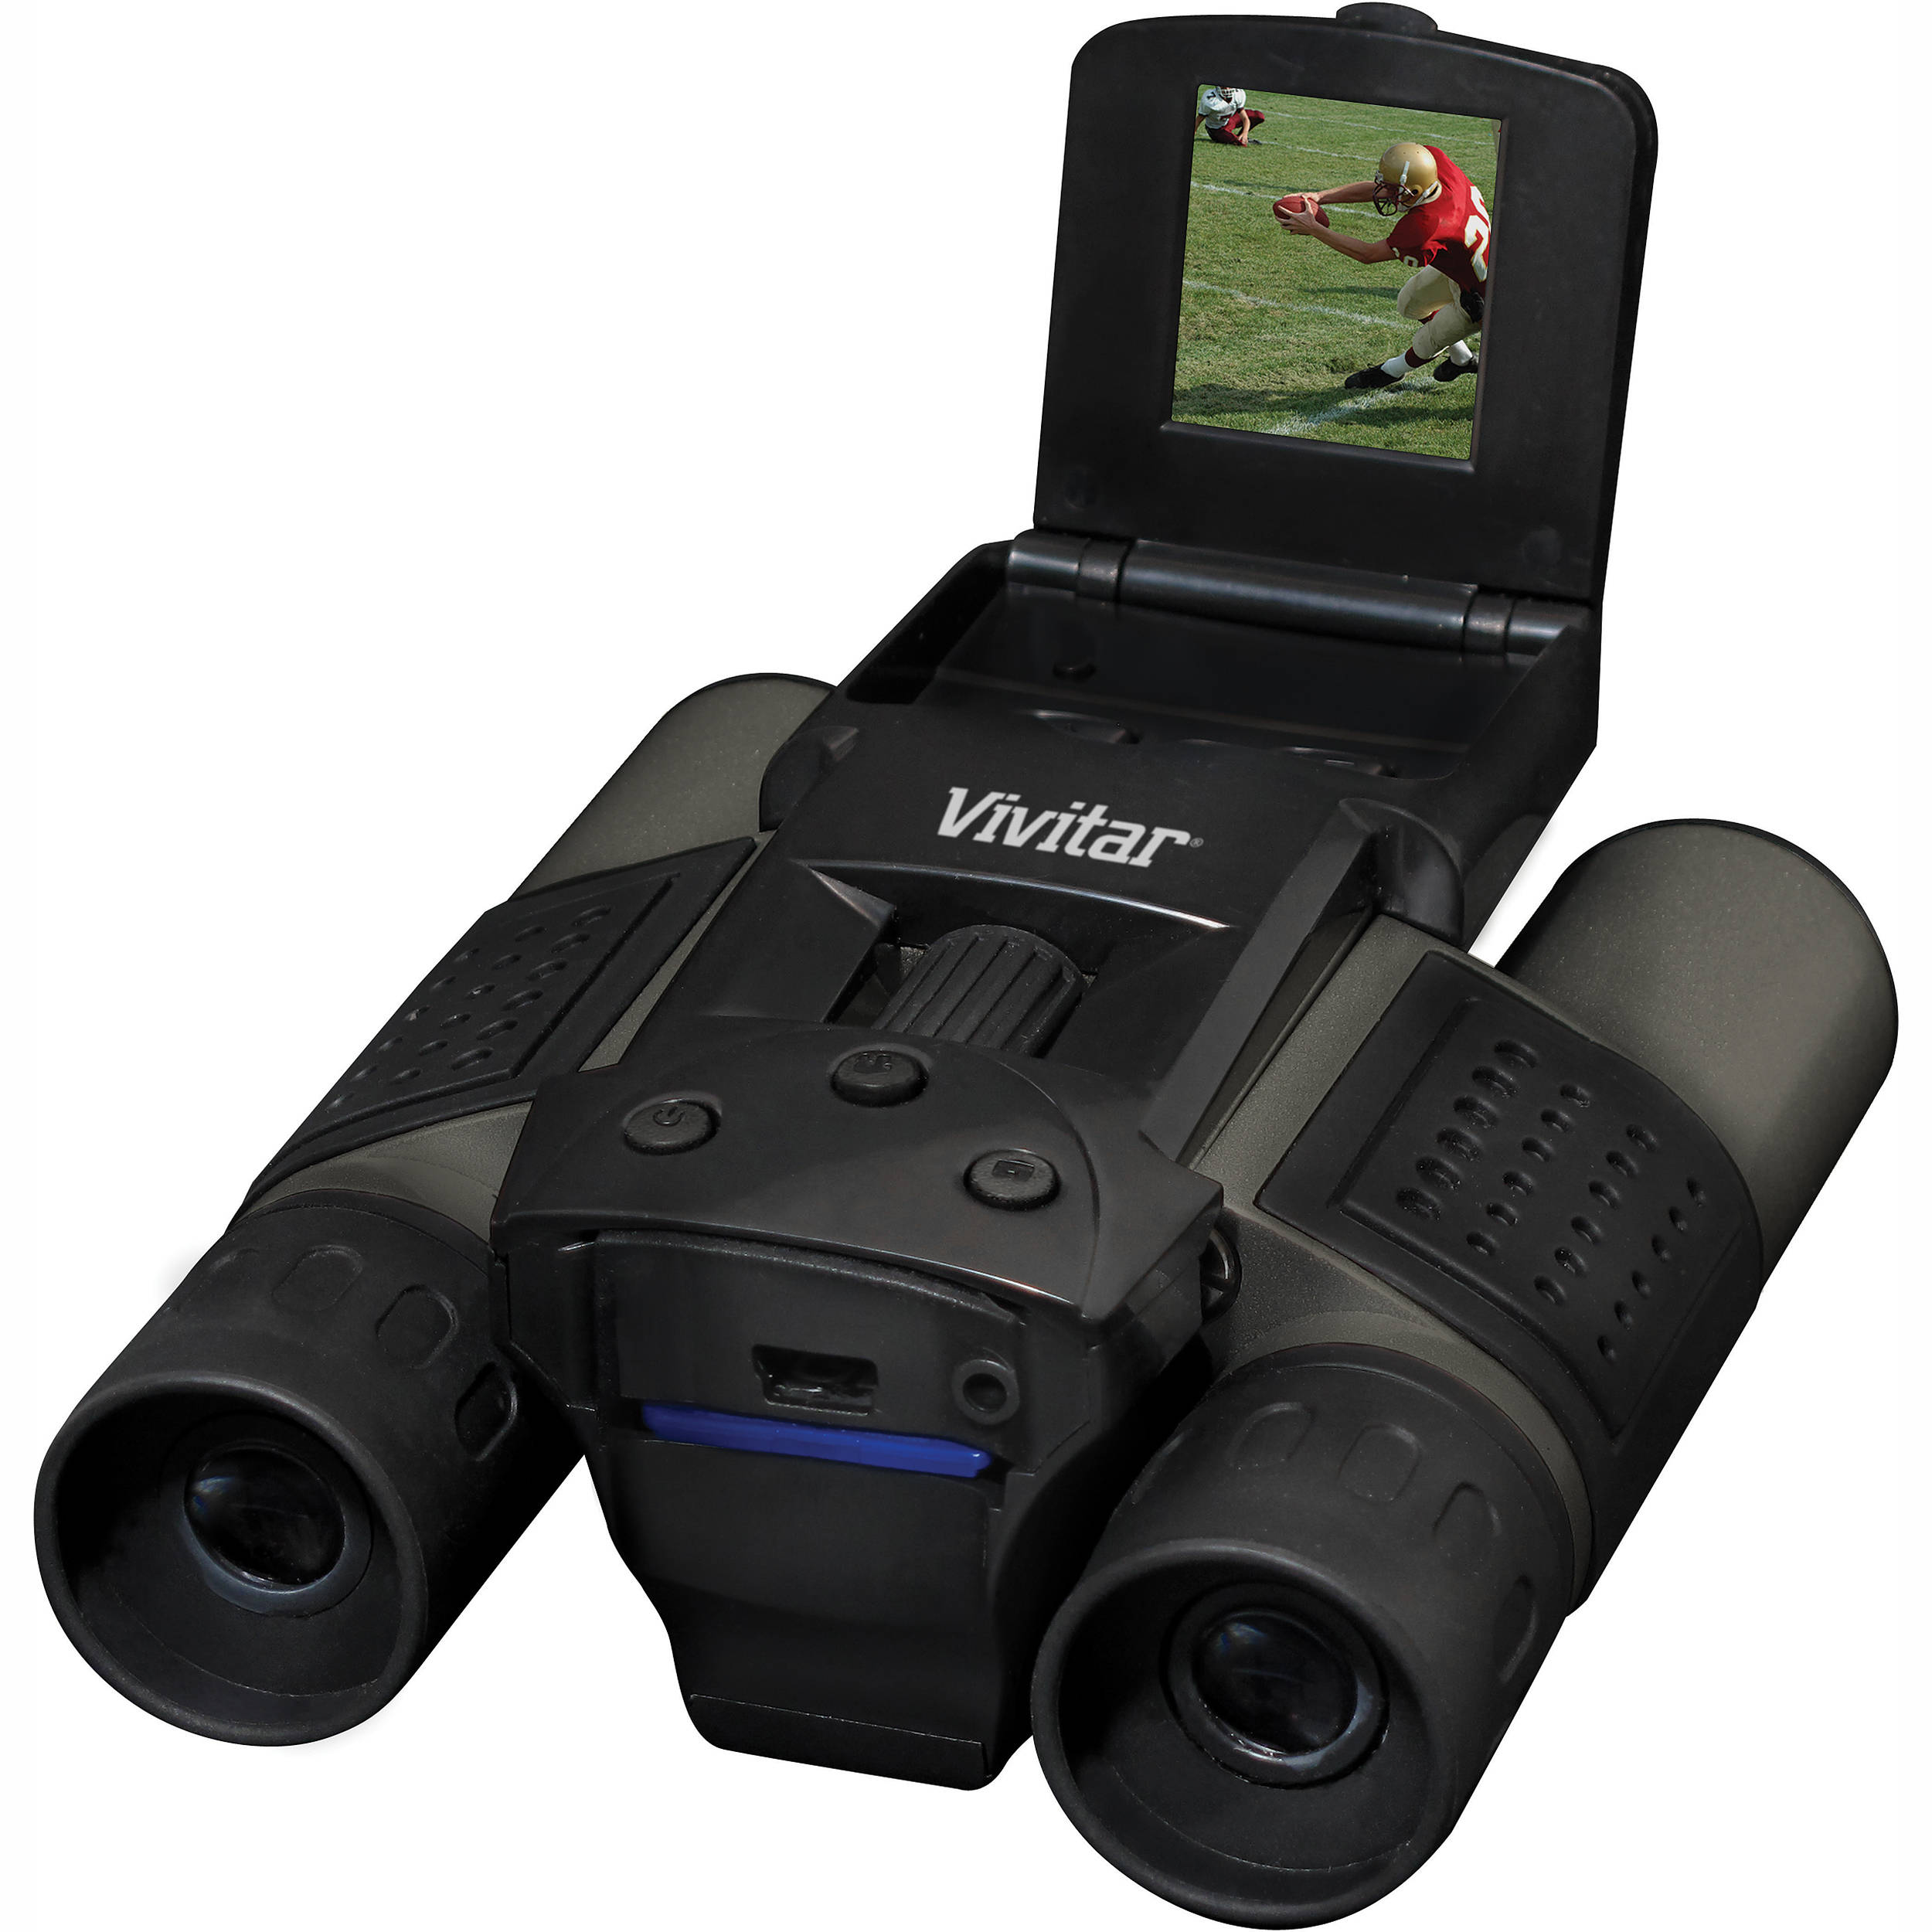 Vivitar 12x25 Digital Camera Binocular VIV-CV-1225V B&H Photo